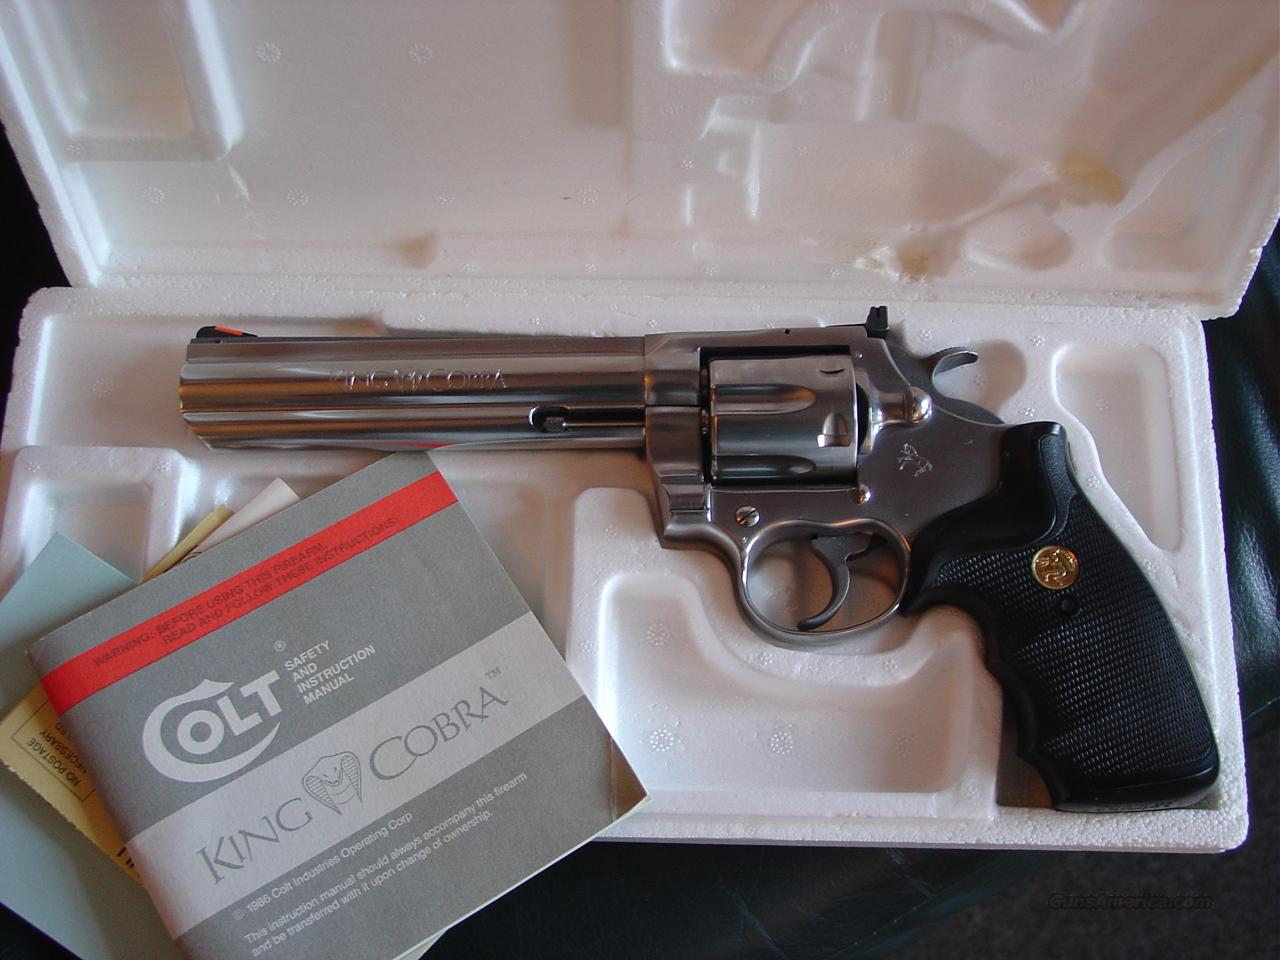 "Colt King Cobra 357 magnum,6"" high polished satin stainless,with serial numbered box,manual etc,1986 on manual-very nice package with Colt medallion grips  Guns > Pistols > Colt Double Action Revolvers- Modern"